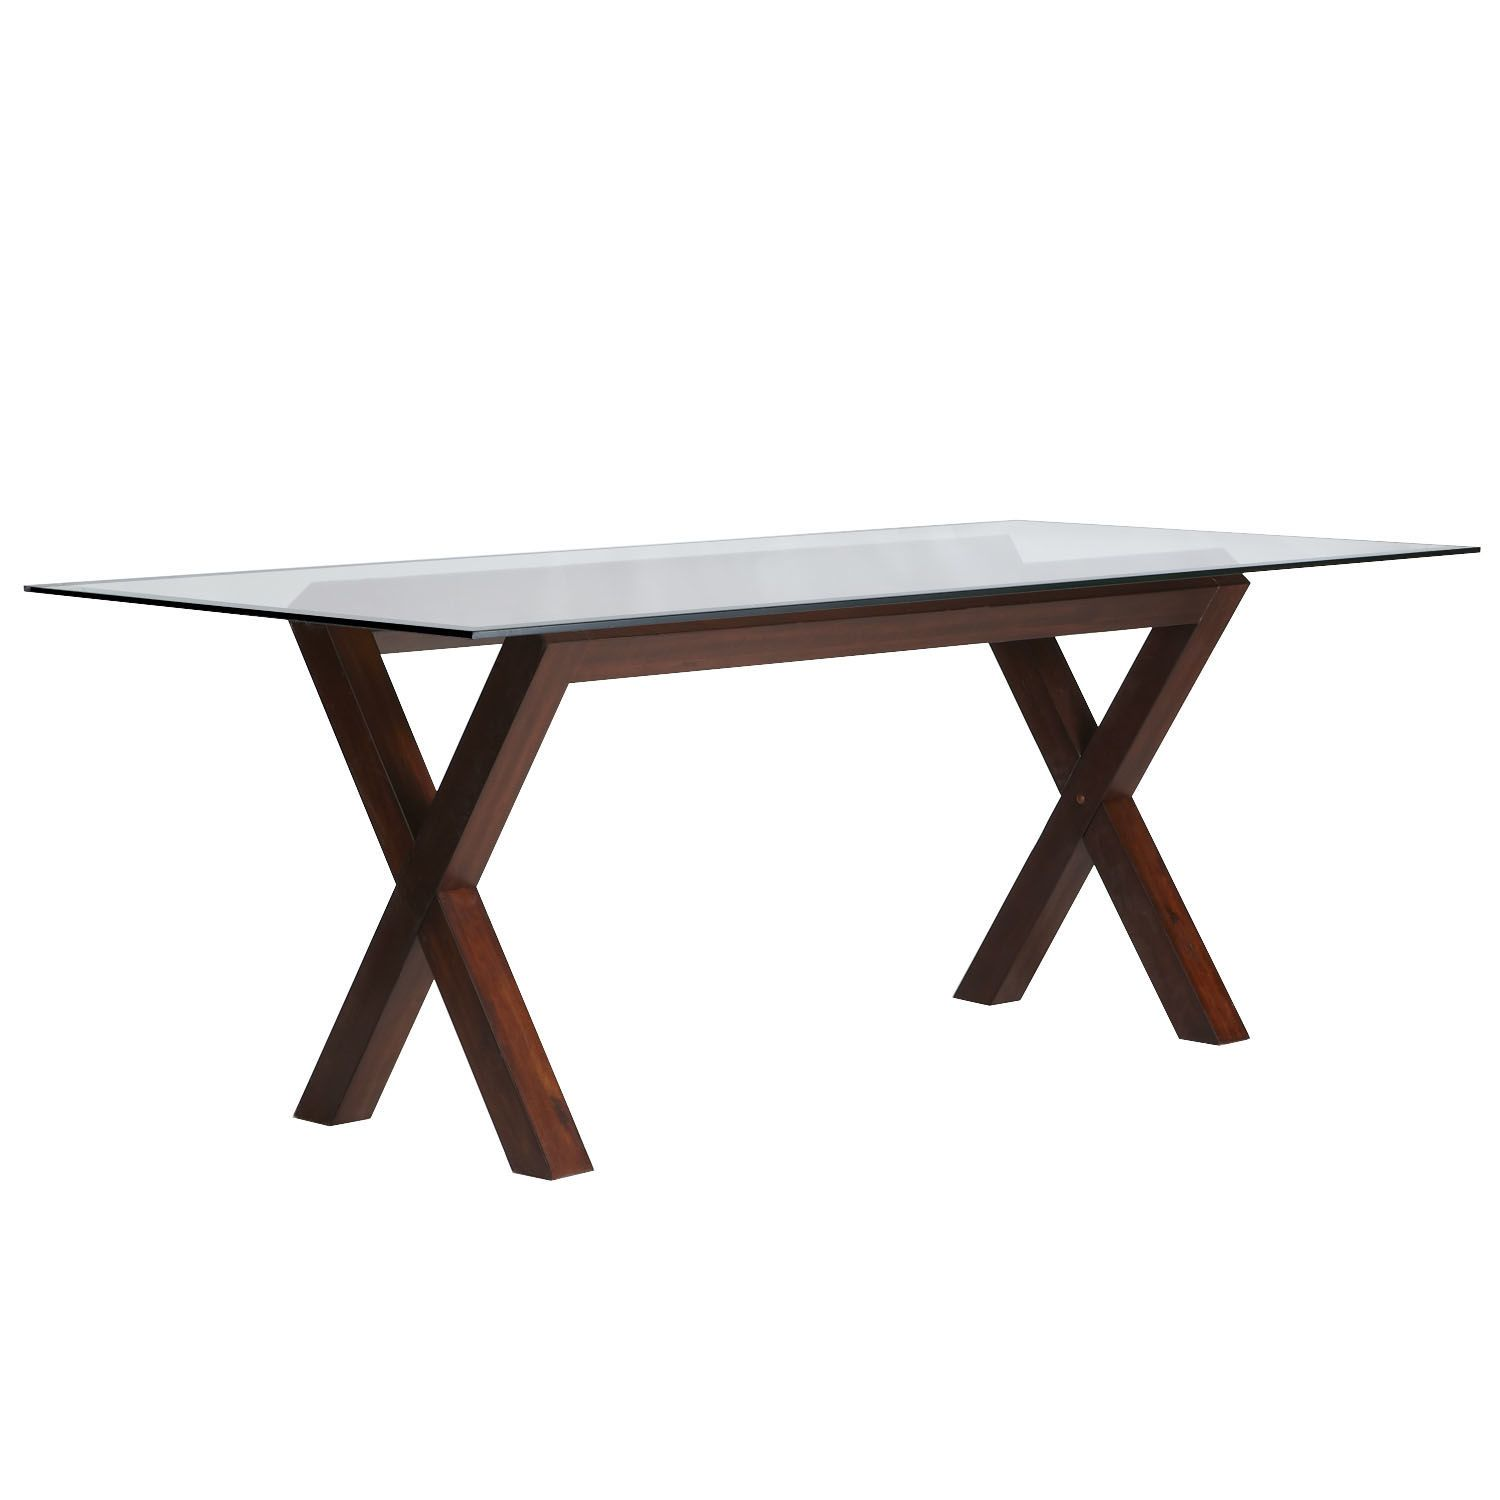 bennett dining table base - mahogany brown | pier 1 imports